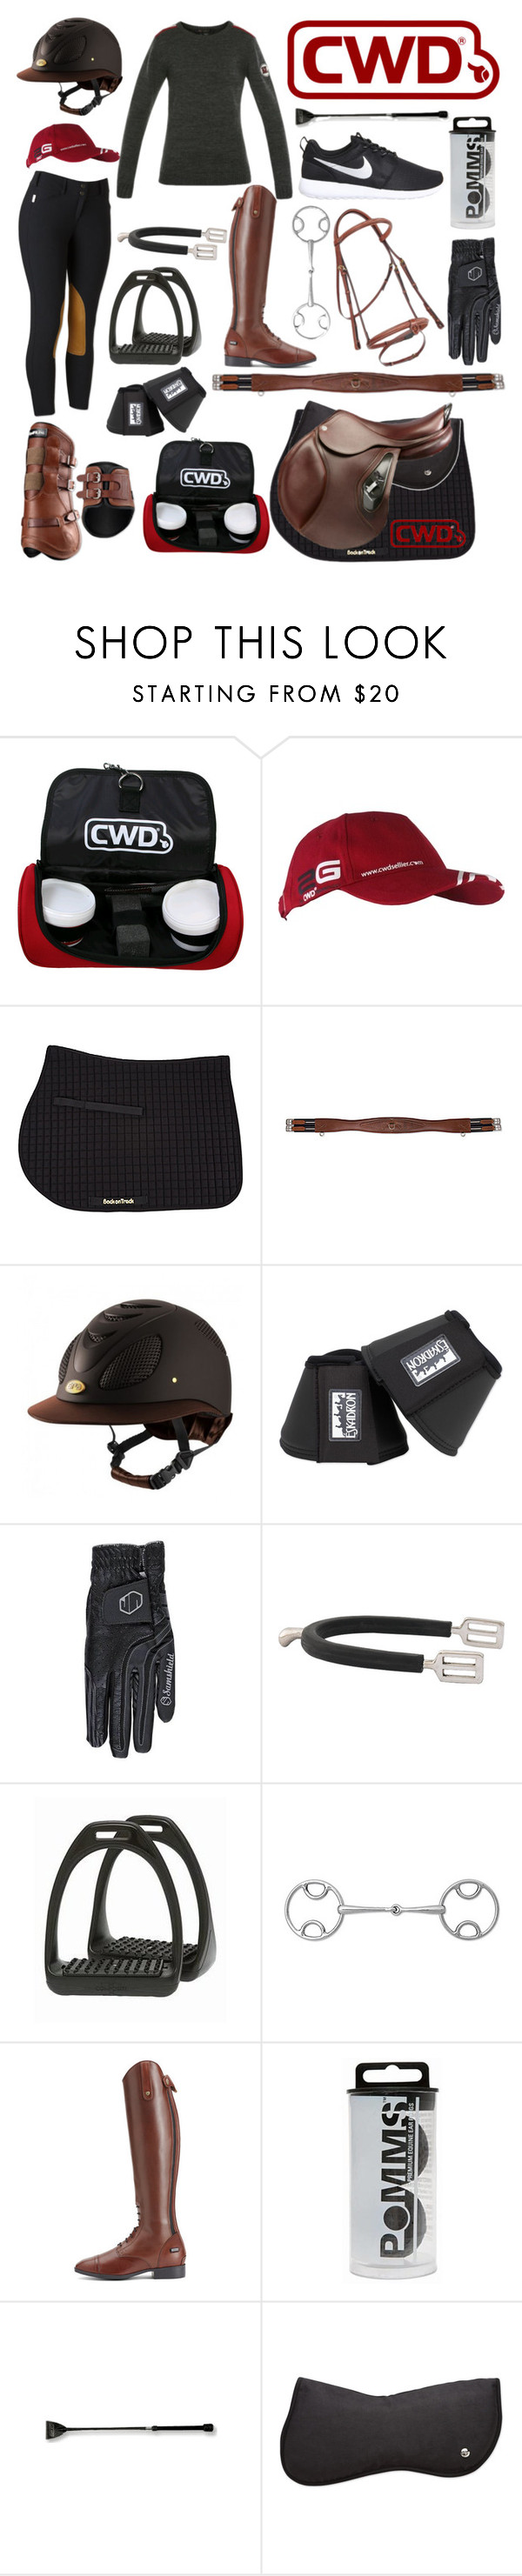 """""""cwd themed outfit"""" by a-circuit-equestrian ❤ liked on Polyvore featuring INC International Concepts, Ariat and NIKE"""